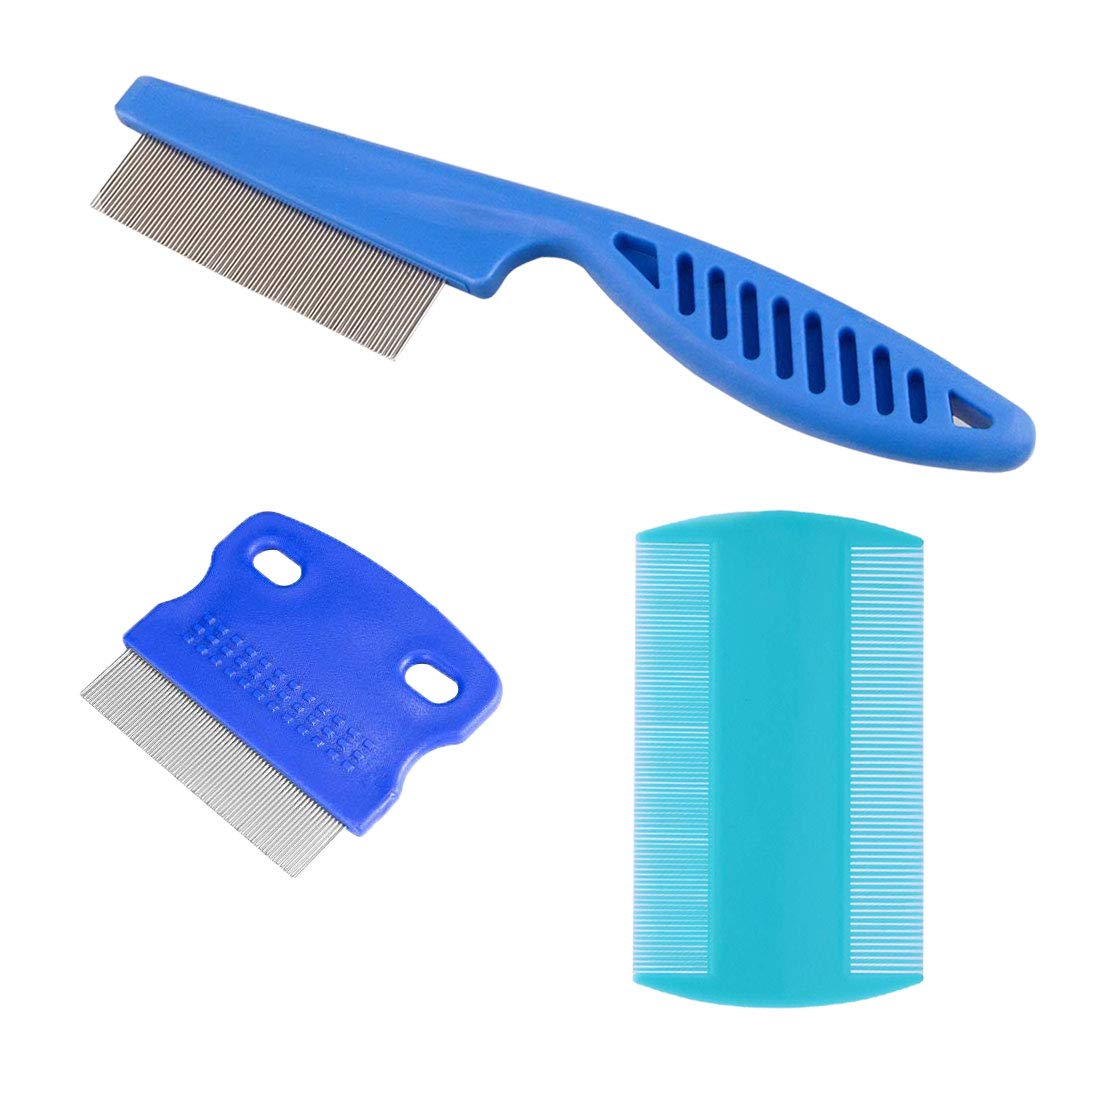 zYoung Tear Stain Remover Combs for Dogs, Gently and Effectively Removes Crust, Mucus, and Stains-Dog Comb,Flea Comb (3pcs)